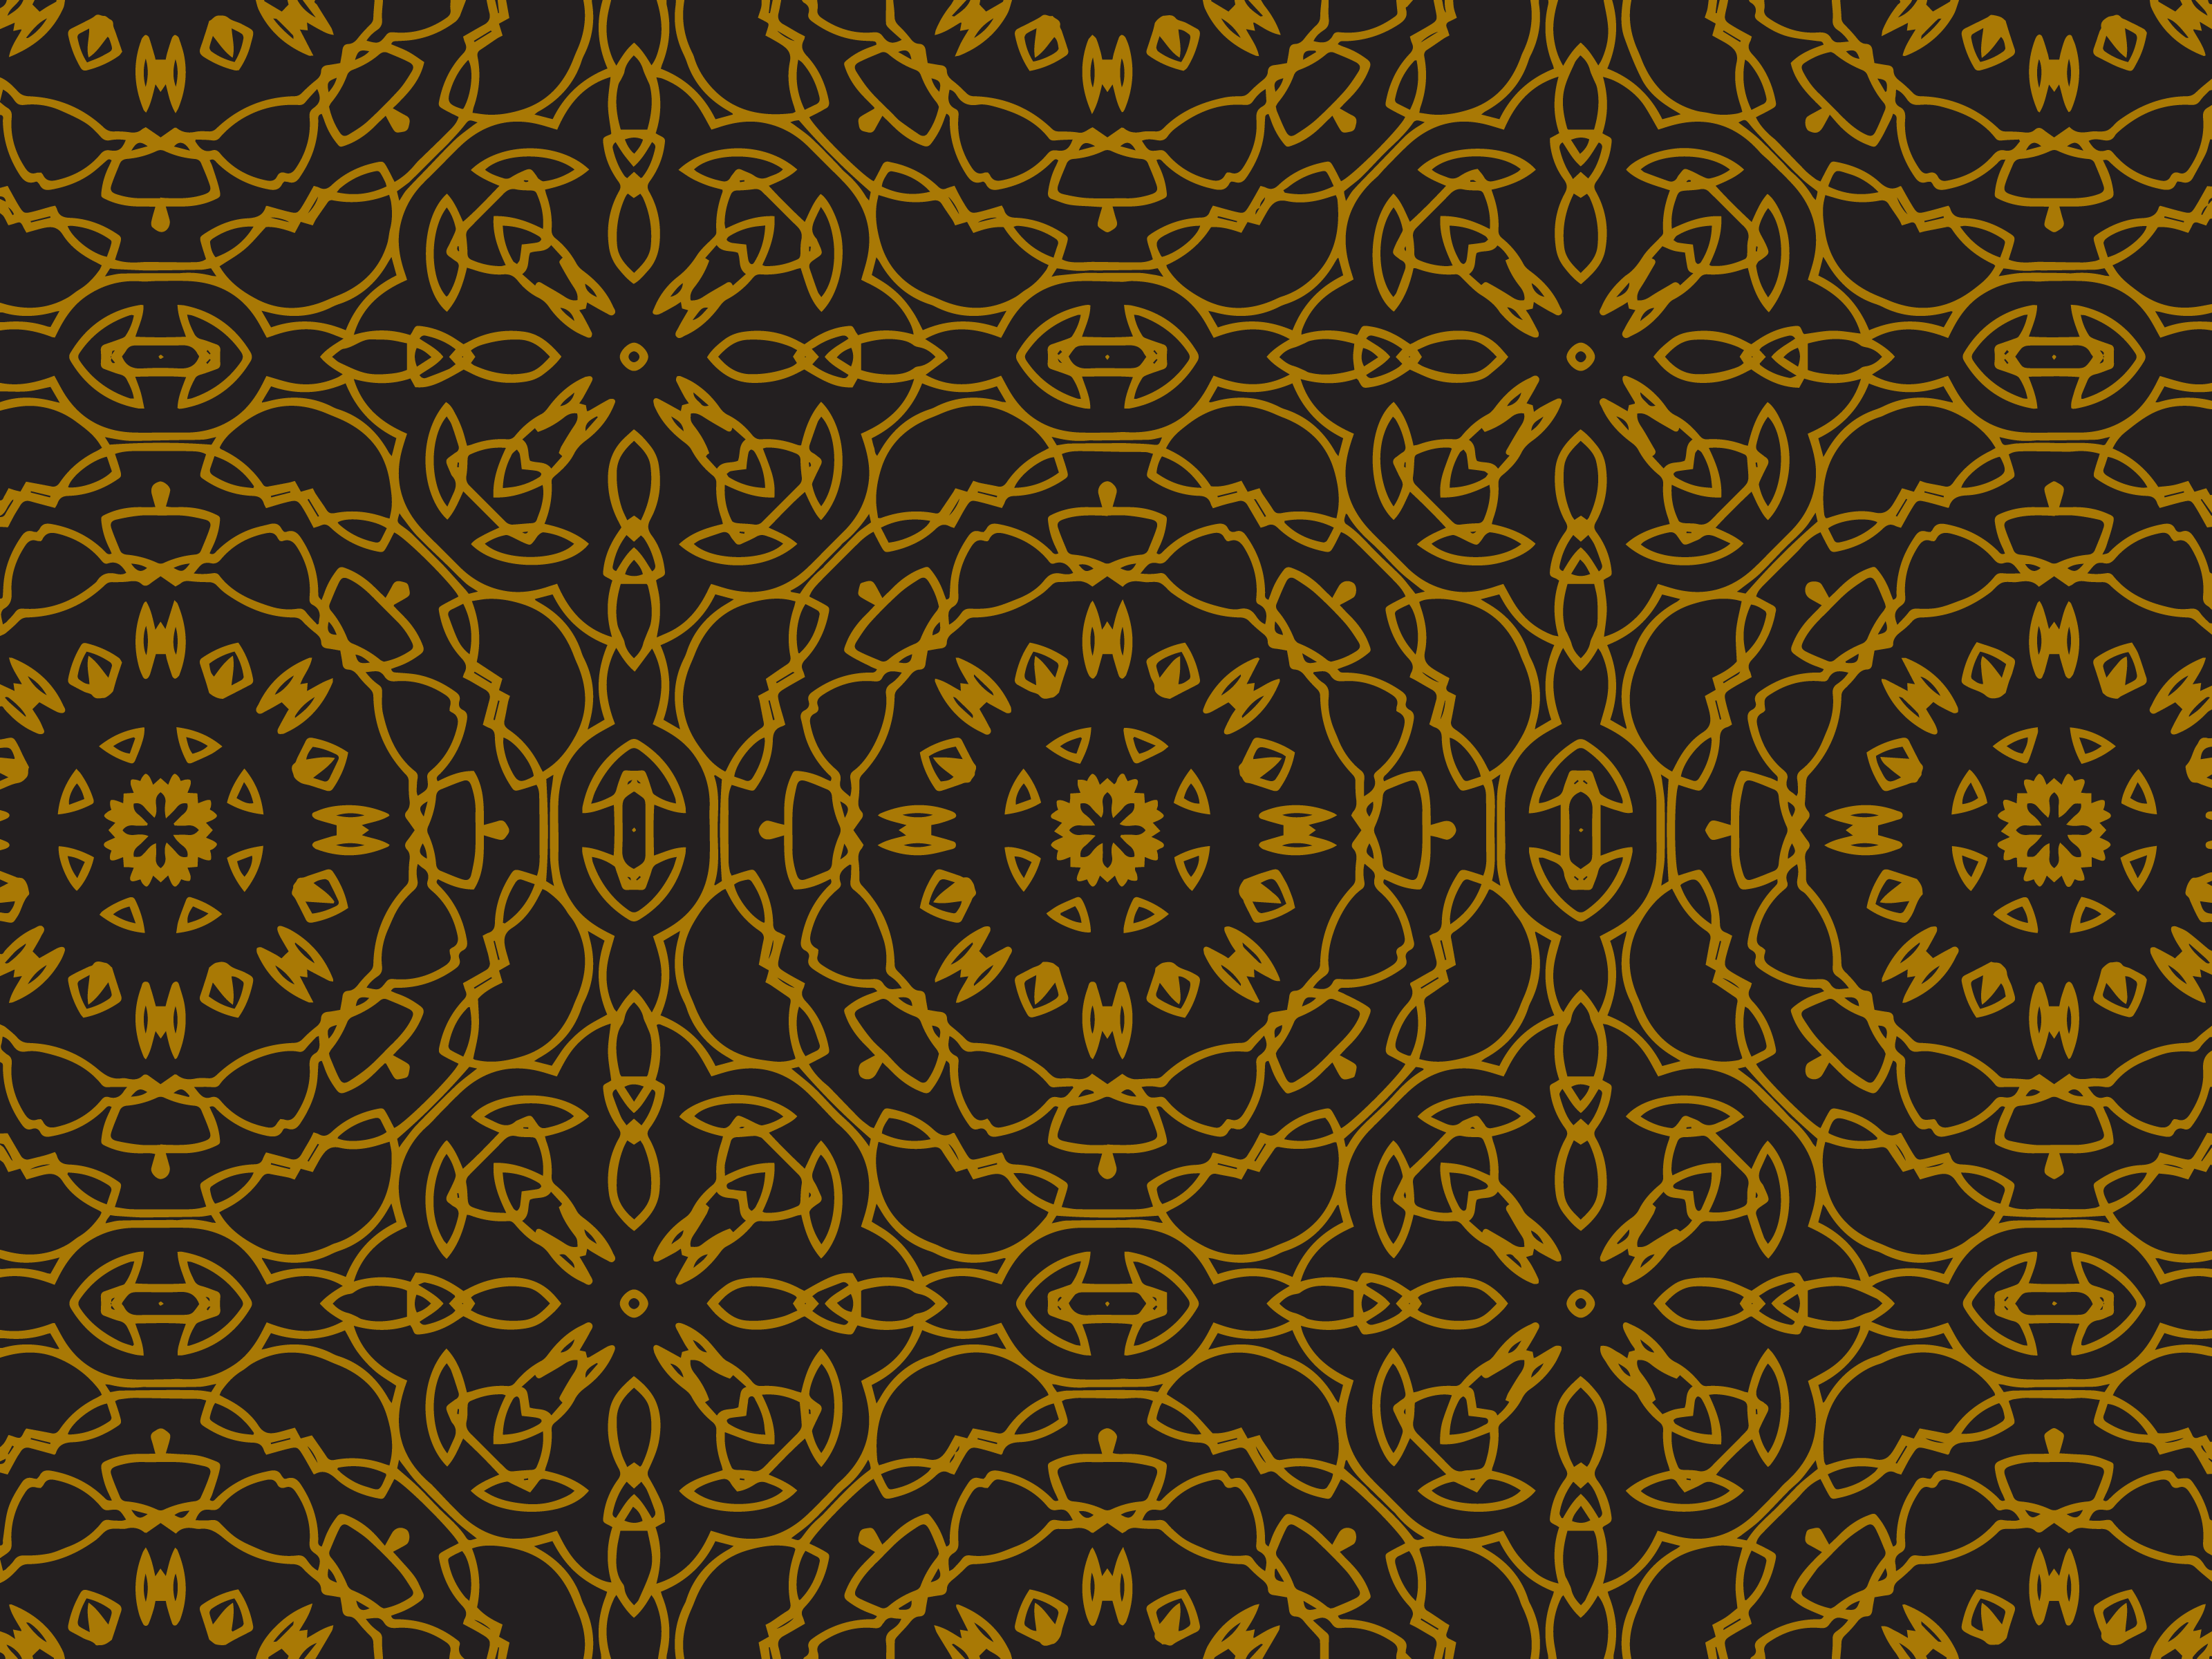 Download Free Pattern Abstract Ornament Lines Motif Graphic By for Cricut Explore, Silhouette and other cutting machines.